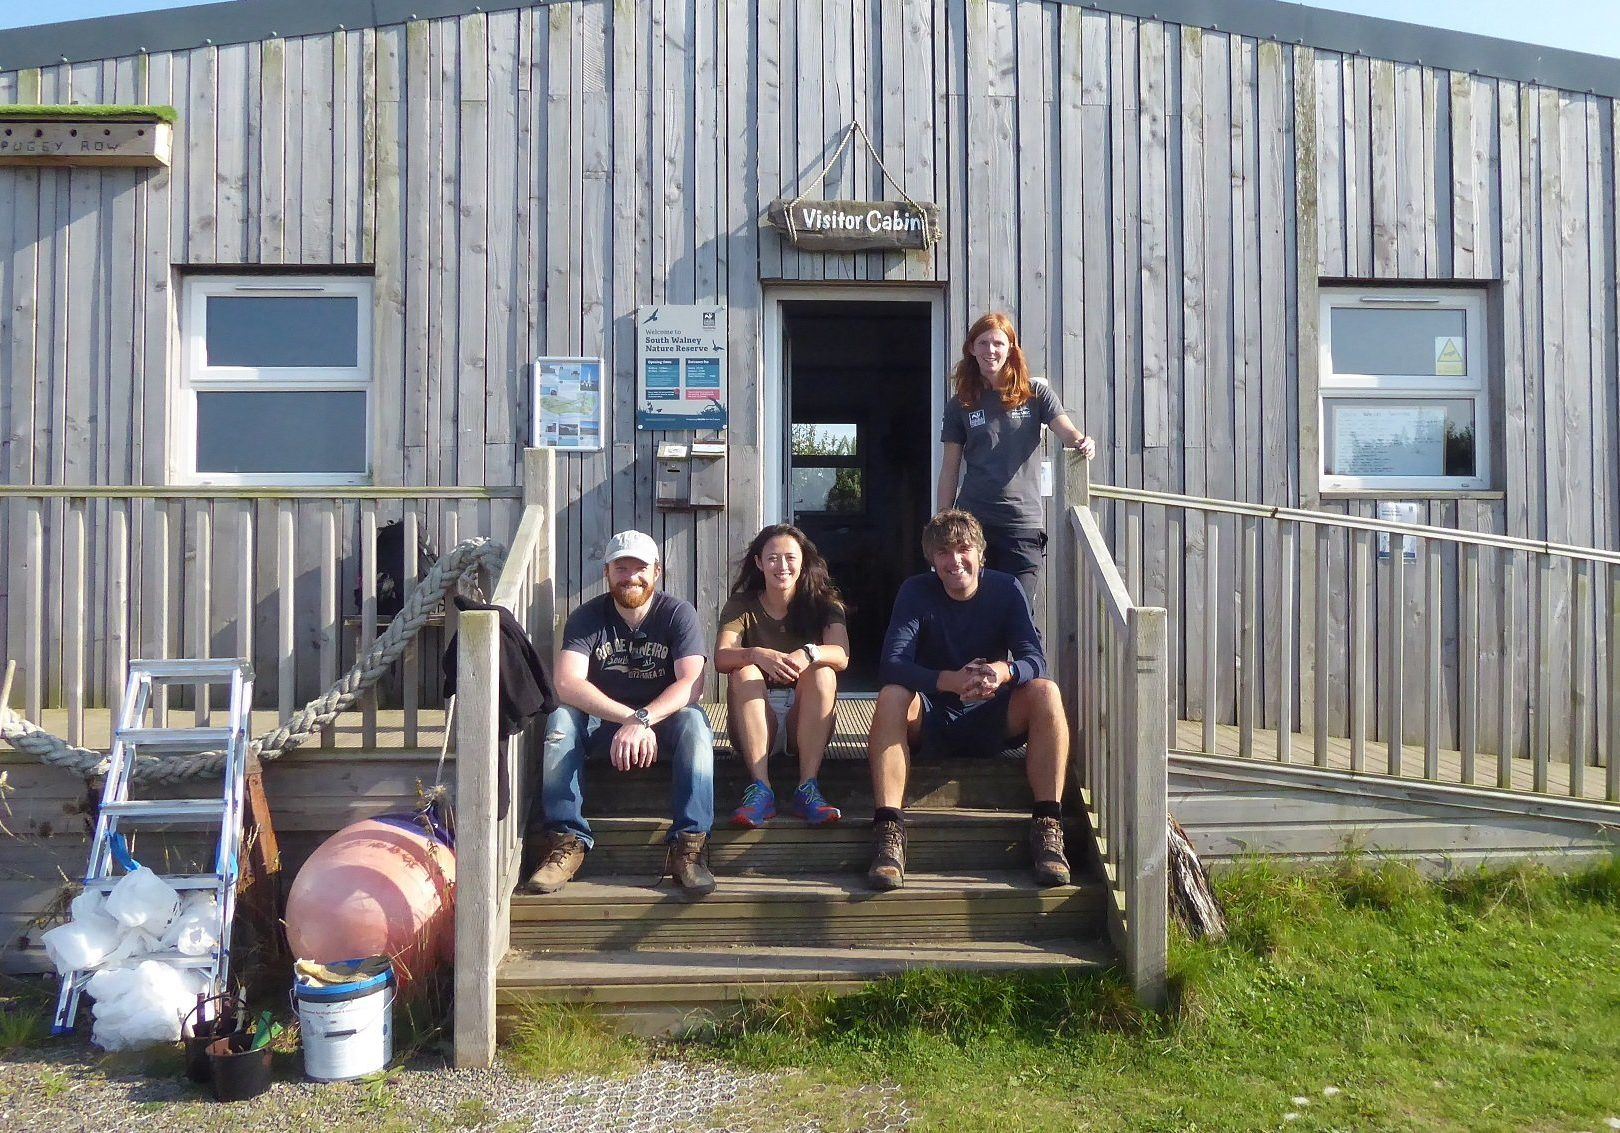 Left to right - Jonathan Hulse, Naomi Sanderson, Bob O'Neil and Eve Mulholland at South Walney Nature Reserve